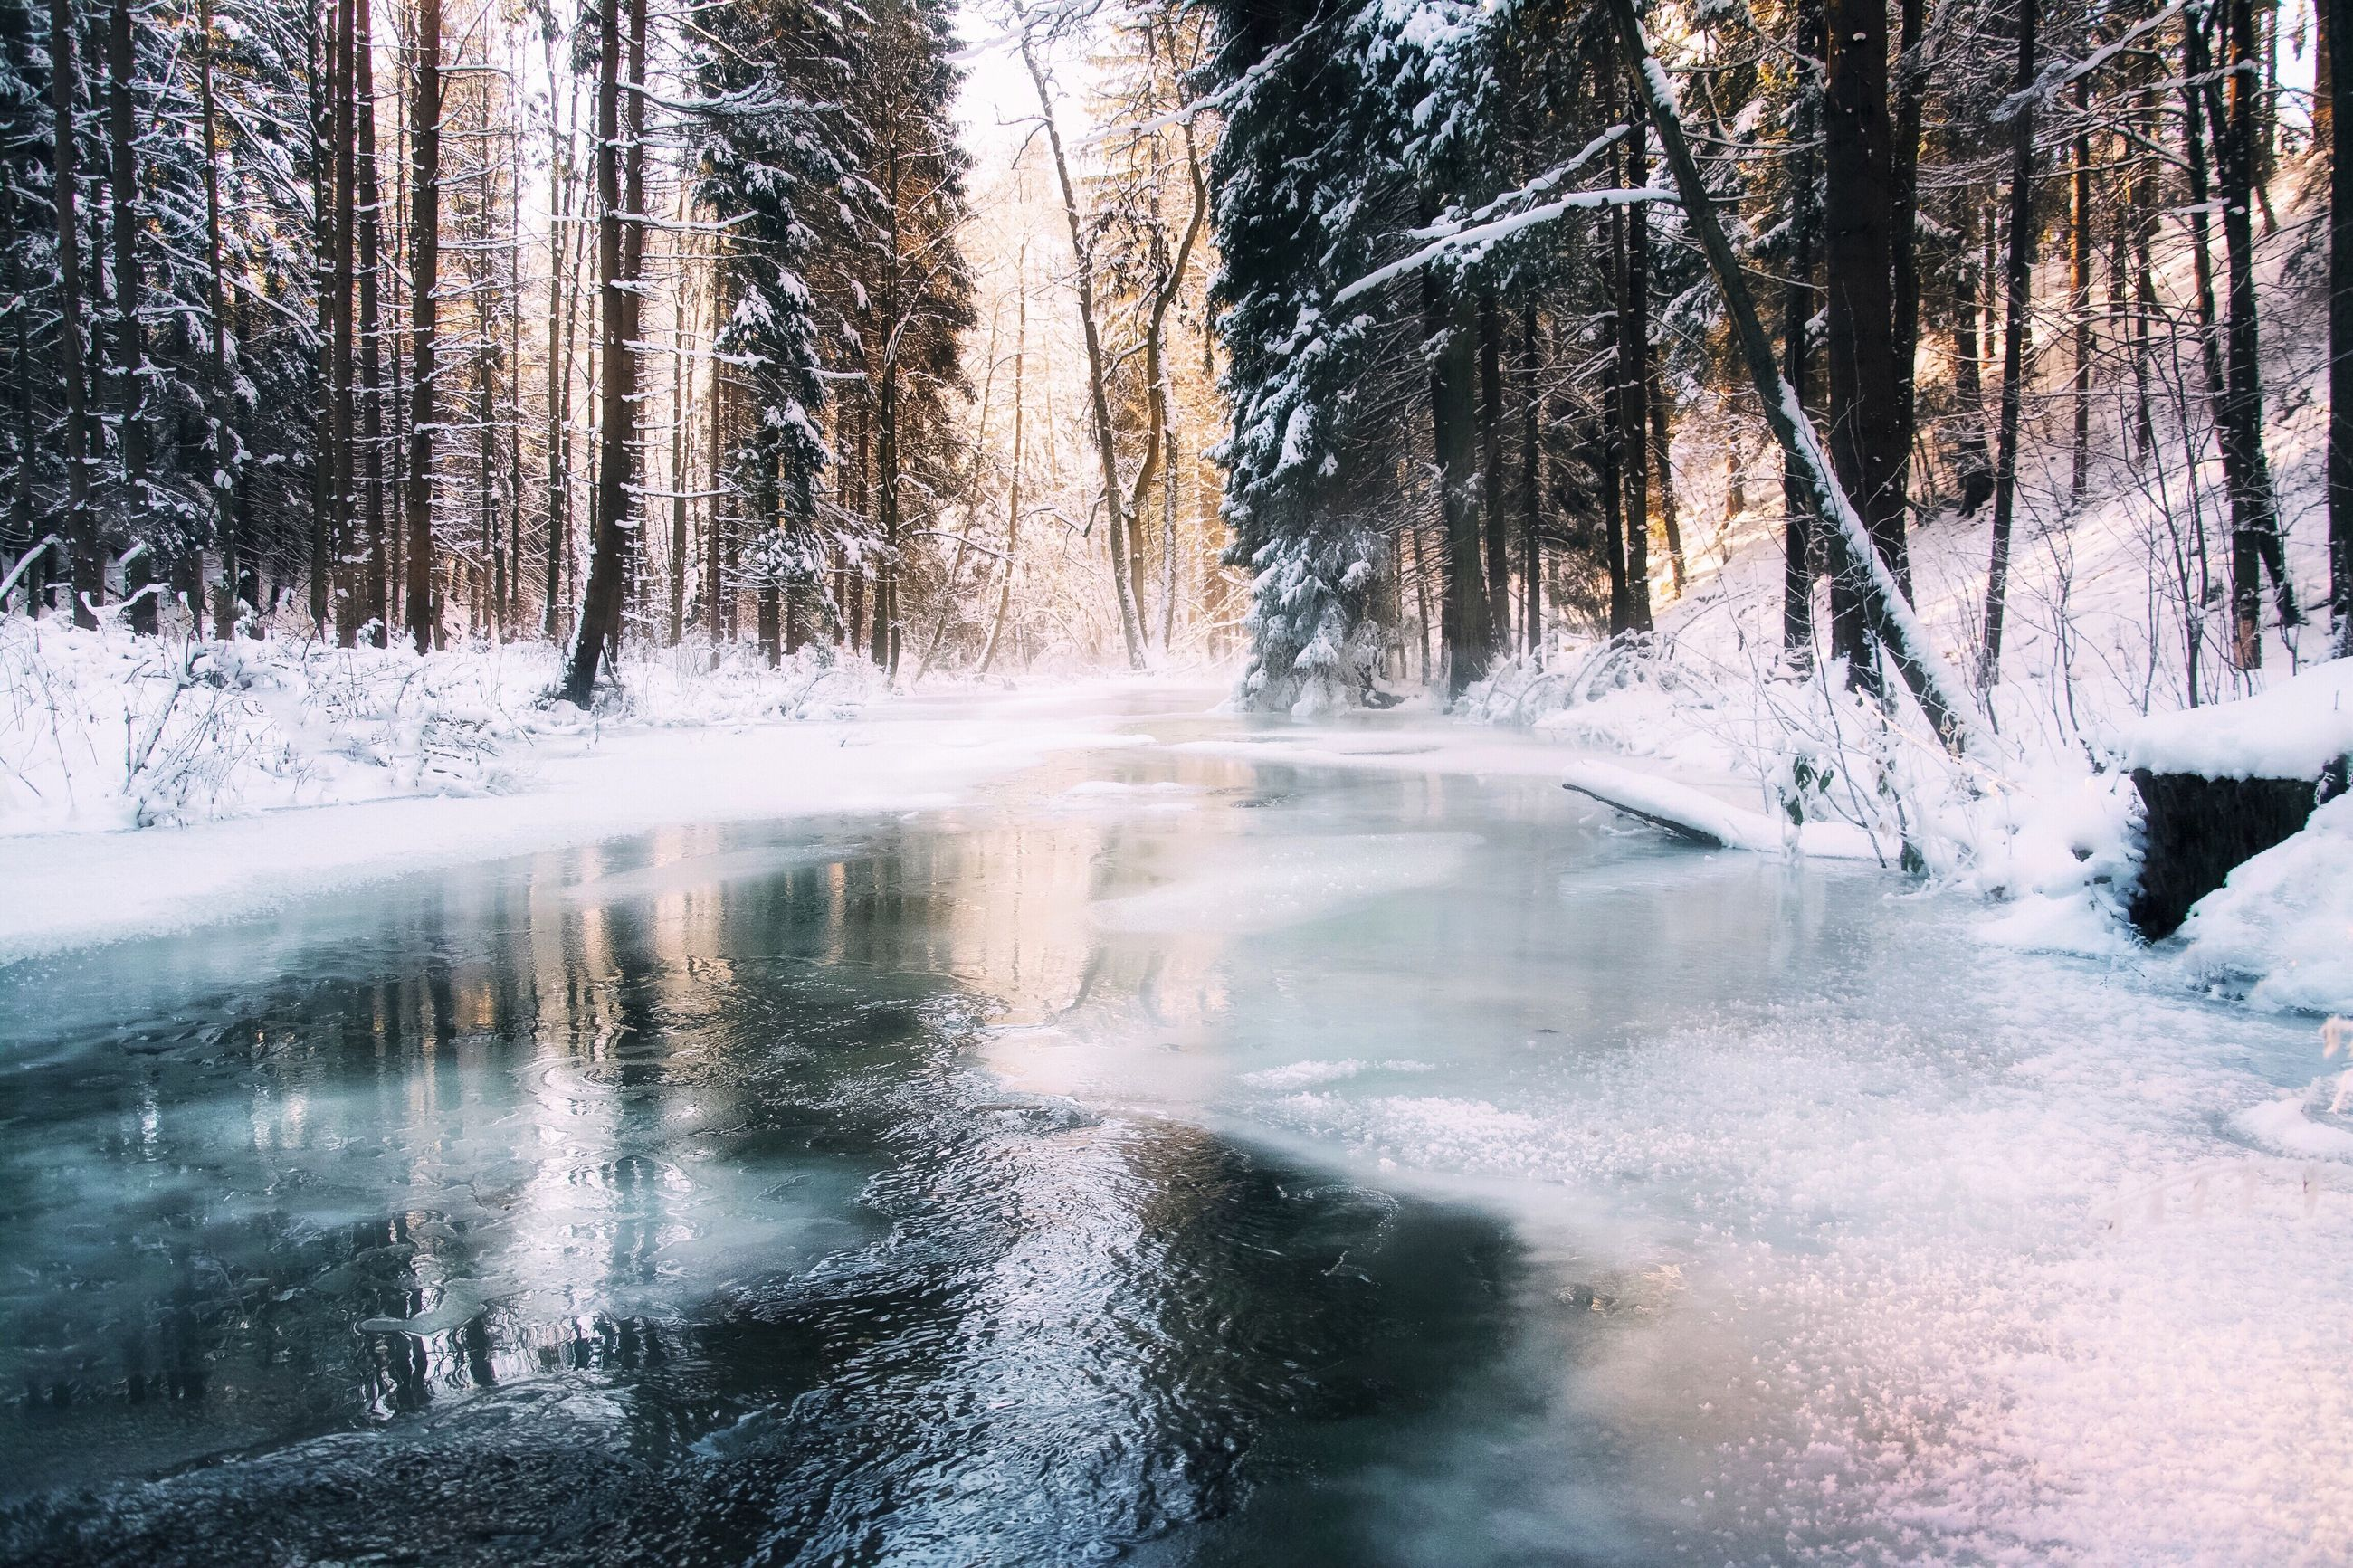 tree, nature, day, water, no people, tranquility, beauty in nature, outdoors, winter